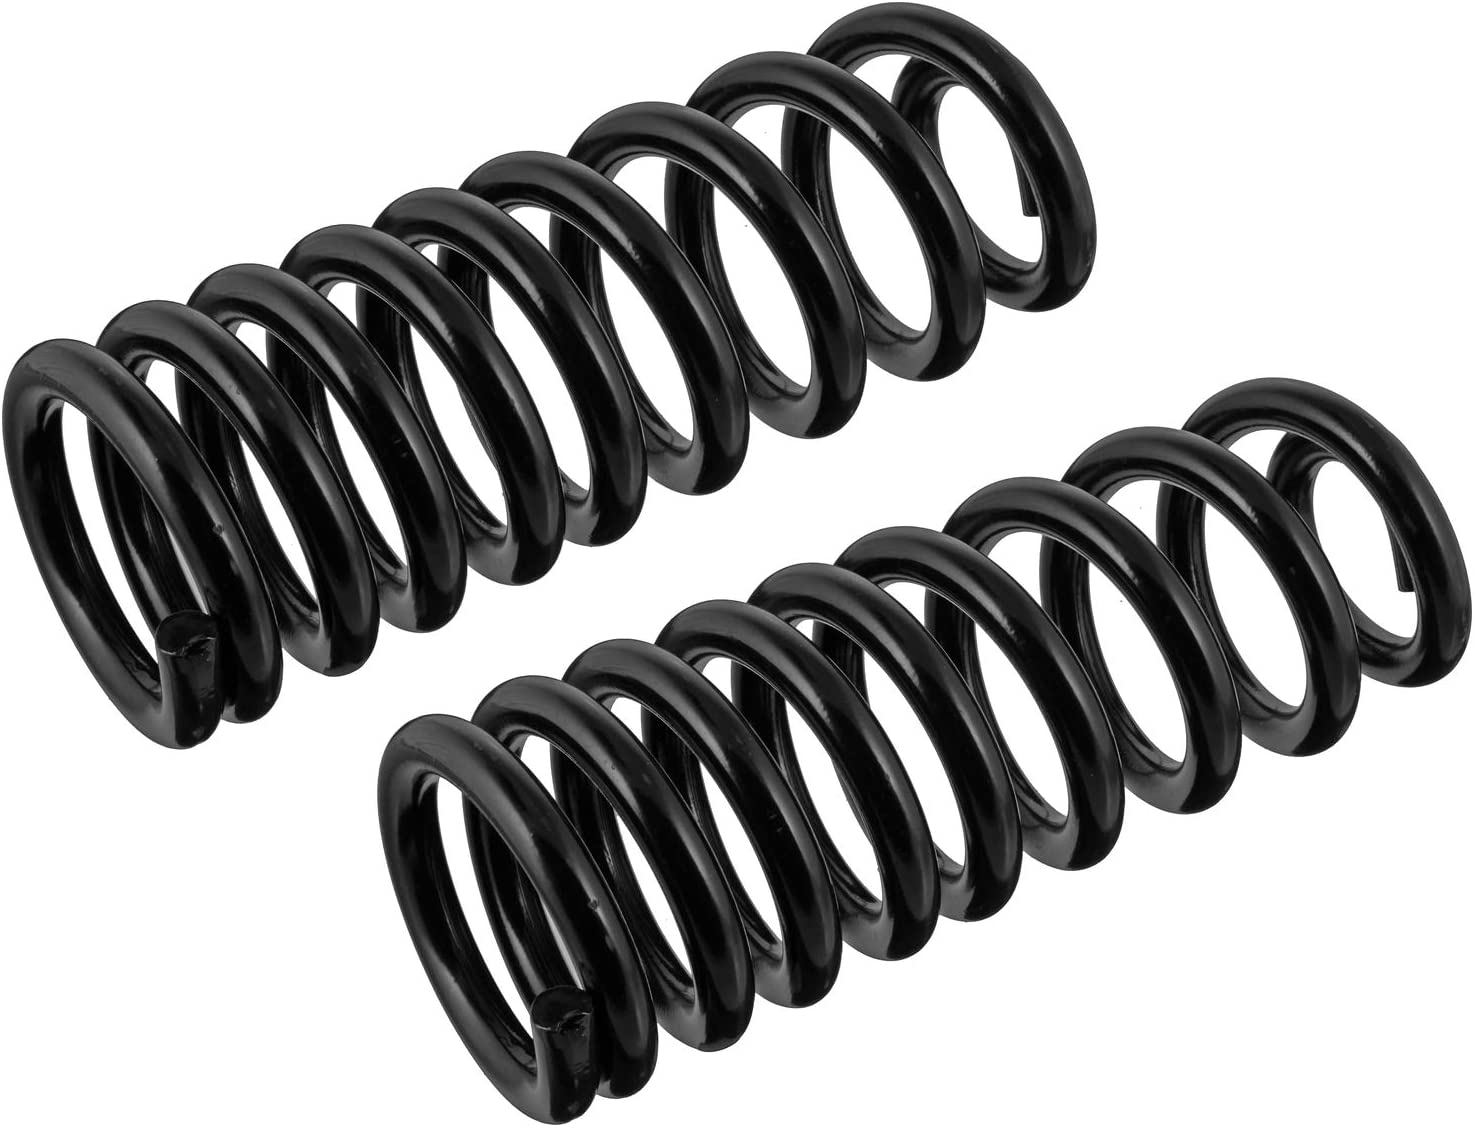 JCS1717T TRW Coil Spring Set Ford Front 1989-1997 supreme New Shipping Free Ranger: